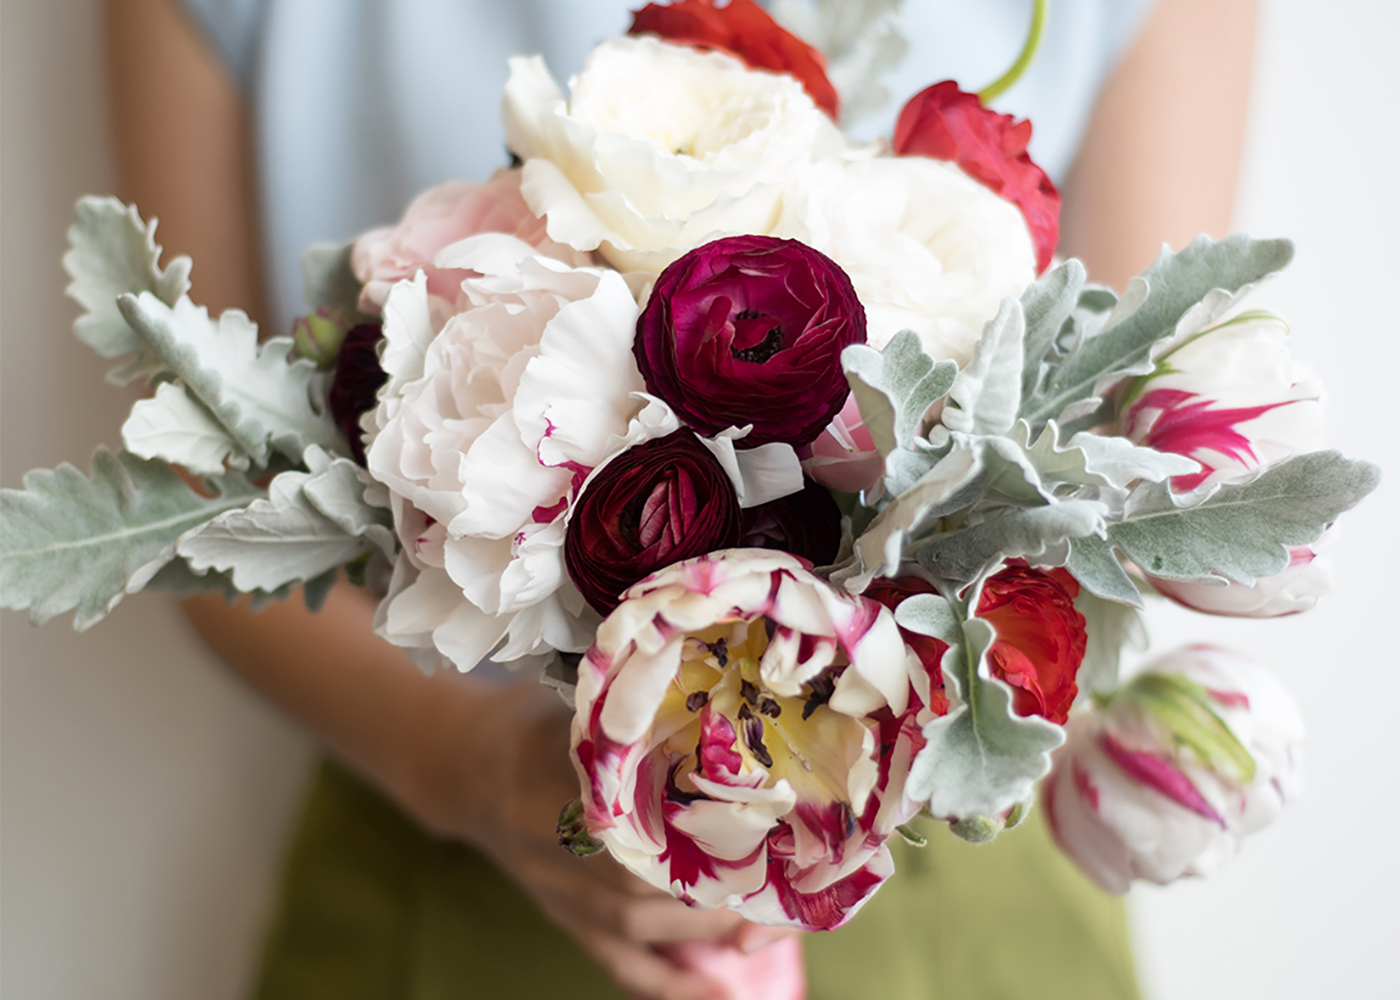 DIY wedding decor: Five tips for arranging your own bouquets and floral centrepieces